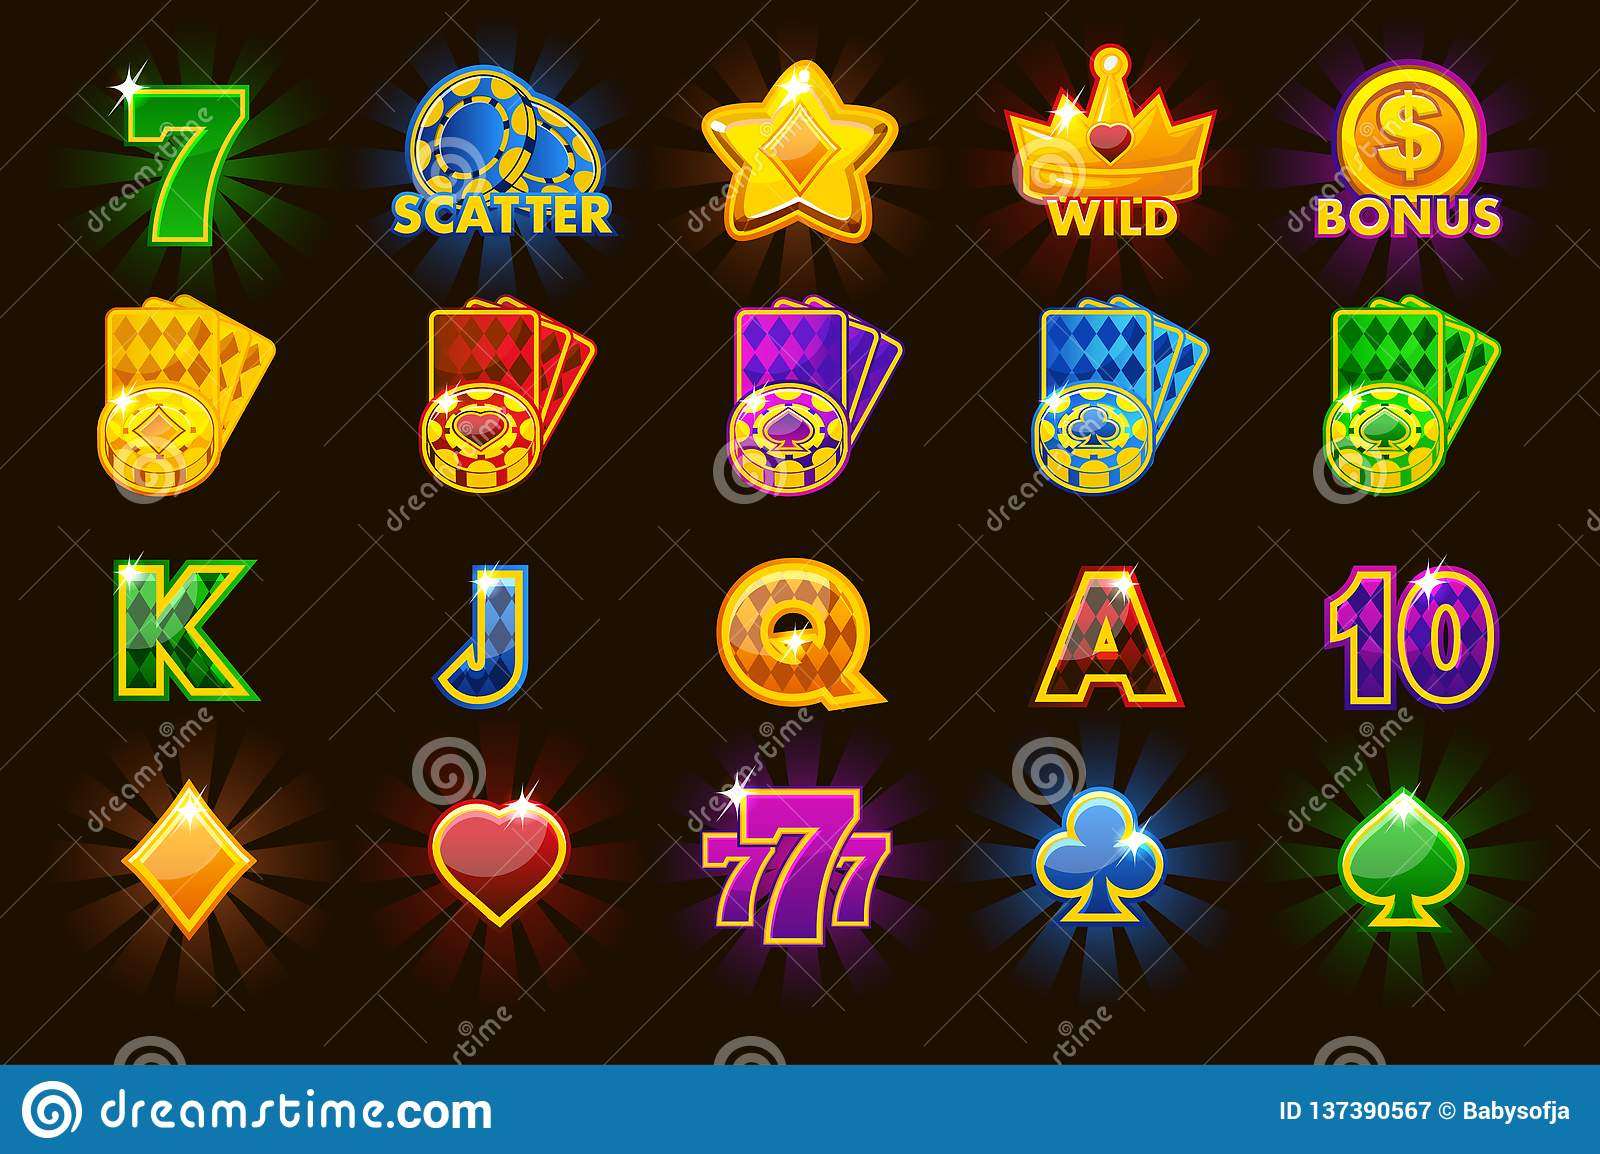 Big Set Gaming Icons Of Card Symbols For Slot Machines Or Casino In Different Colors Game Casino Slot Ui Stock Vector Illustration Of Cards Suit 137390567